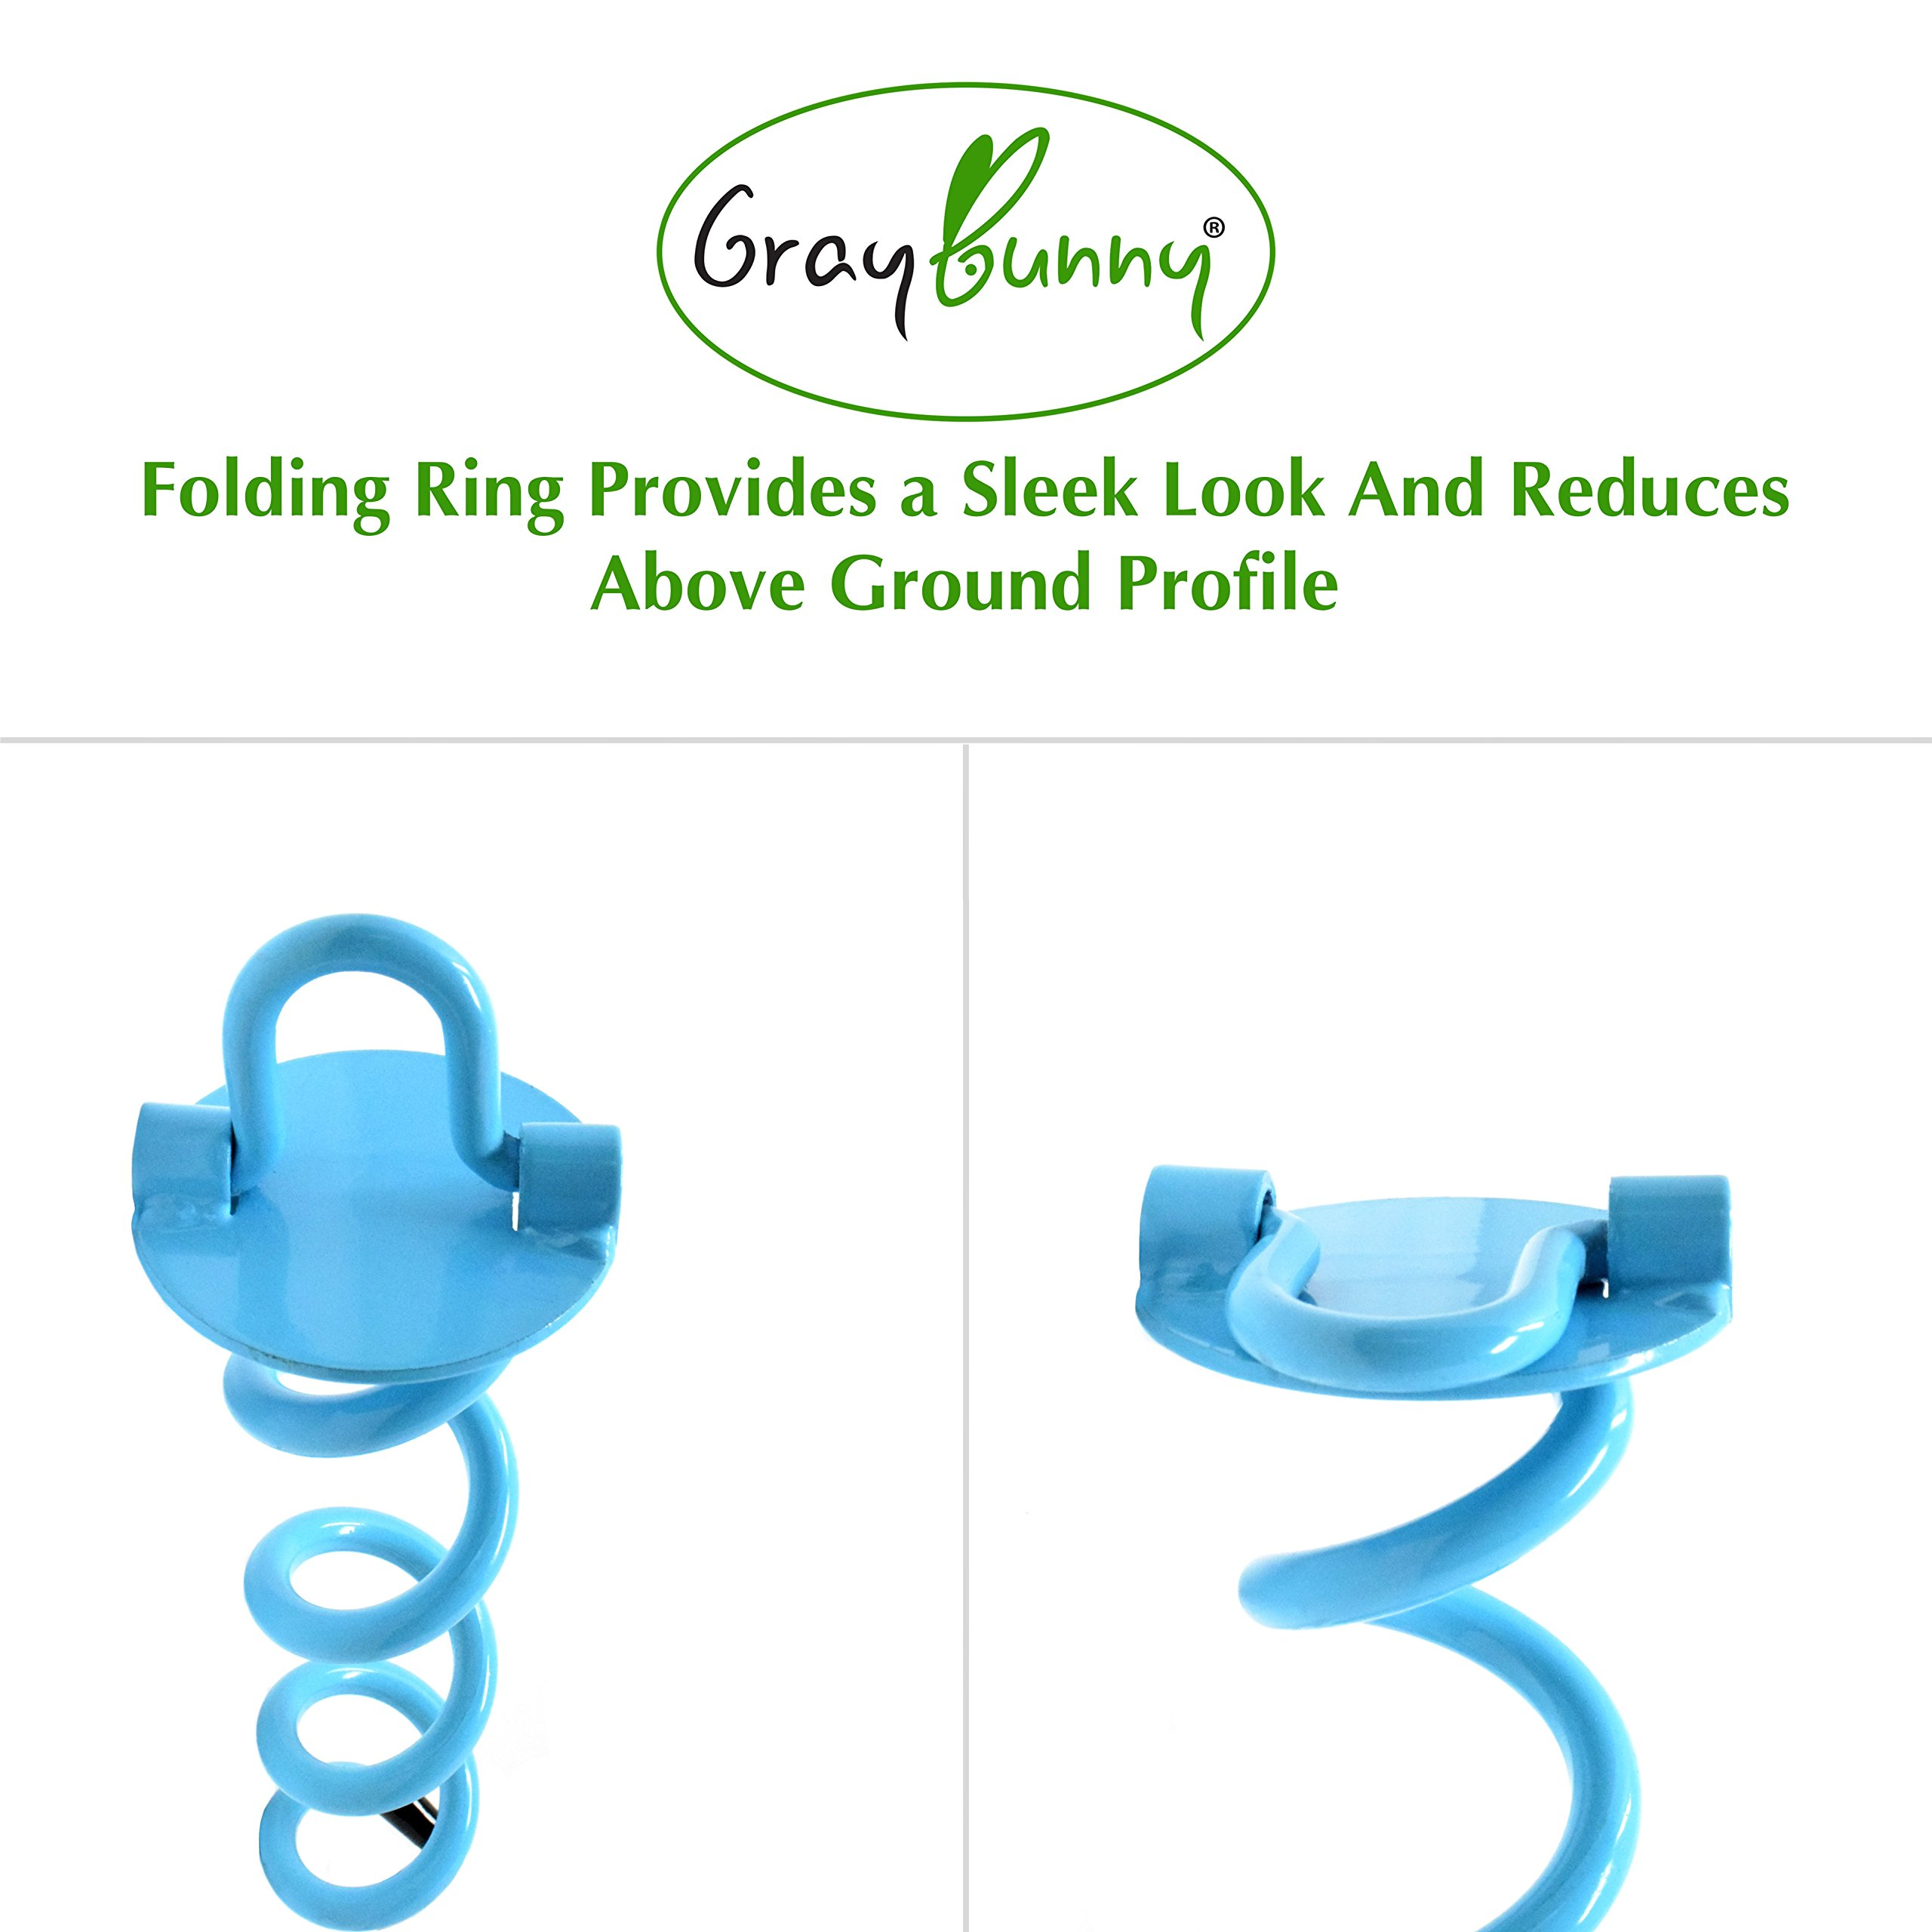 GrayBunny GB-6873B4 Spiral Ground Anchor, 16 inches, 4-Pack Kit, with Torque Bar and Carrying Sack, Folding Ring for Securing Tents, Canopies, Tarps, Trampoline, Swing Sets, Solid Steel Earth Auger by GrayBunny (Image #2)